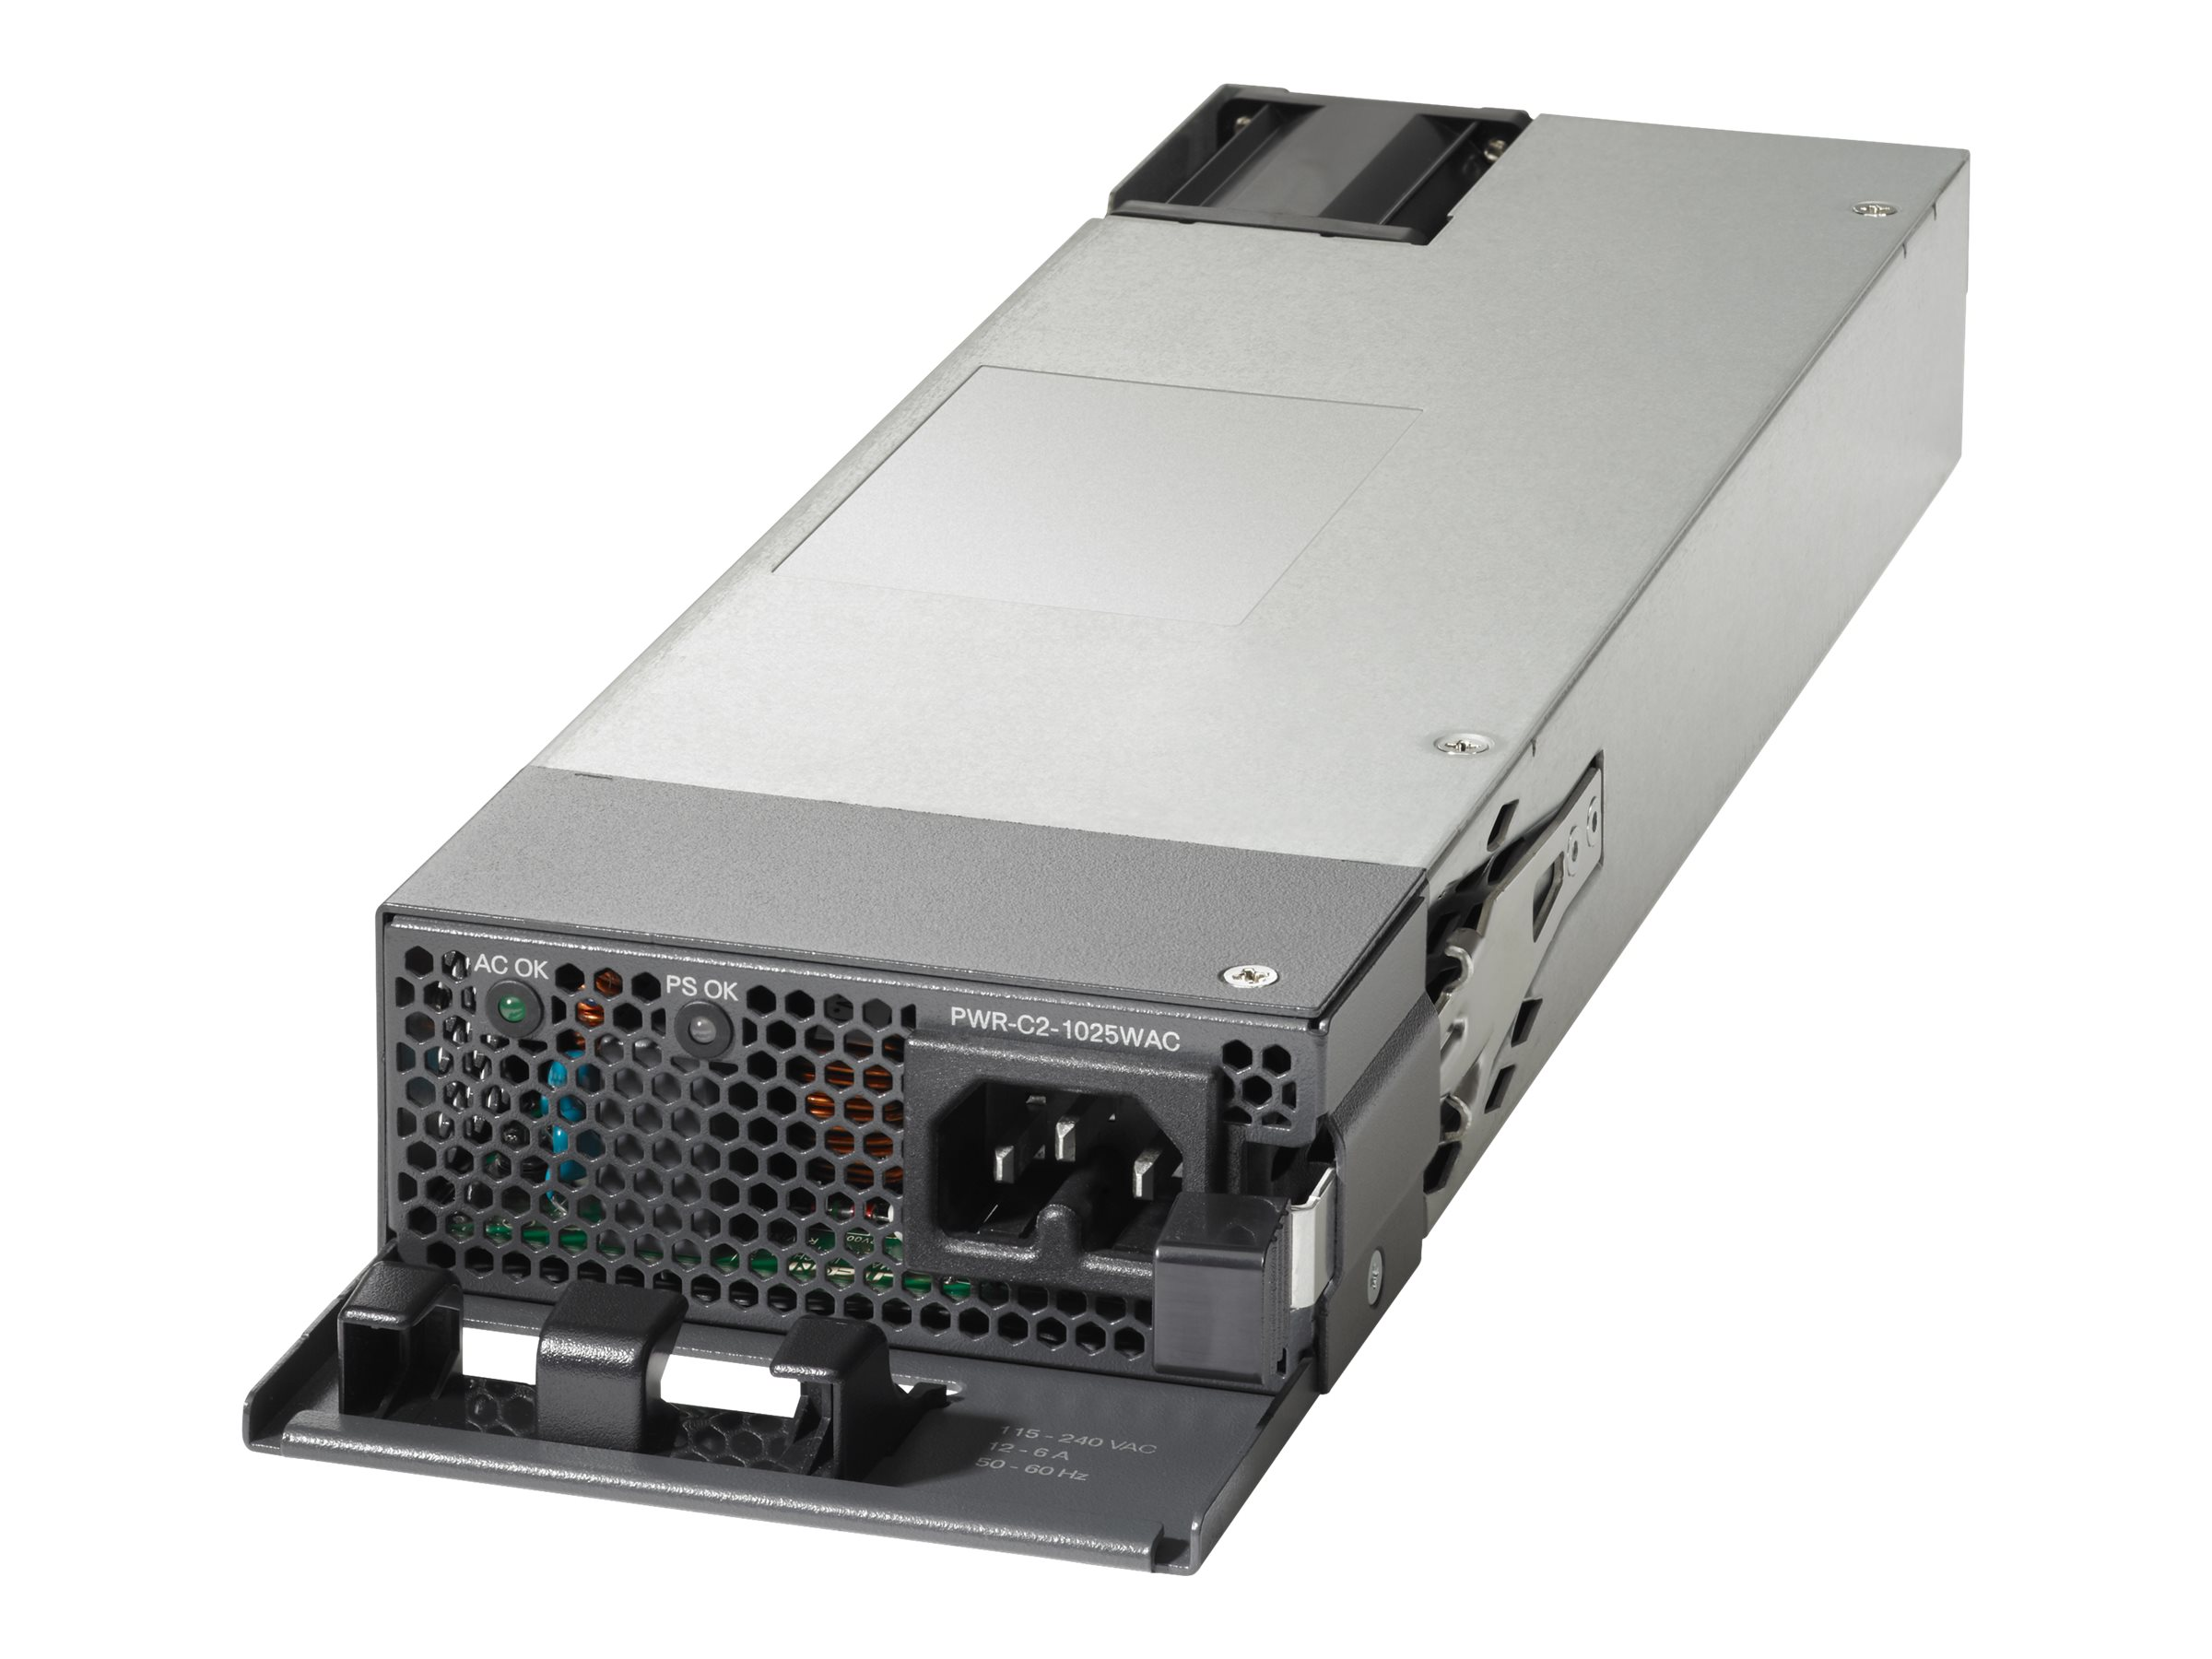 Cisco - power supply - 1025 Watt